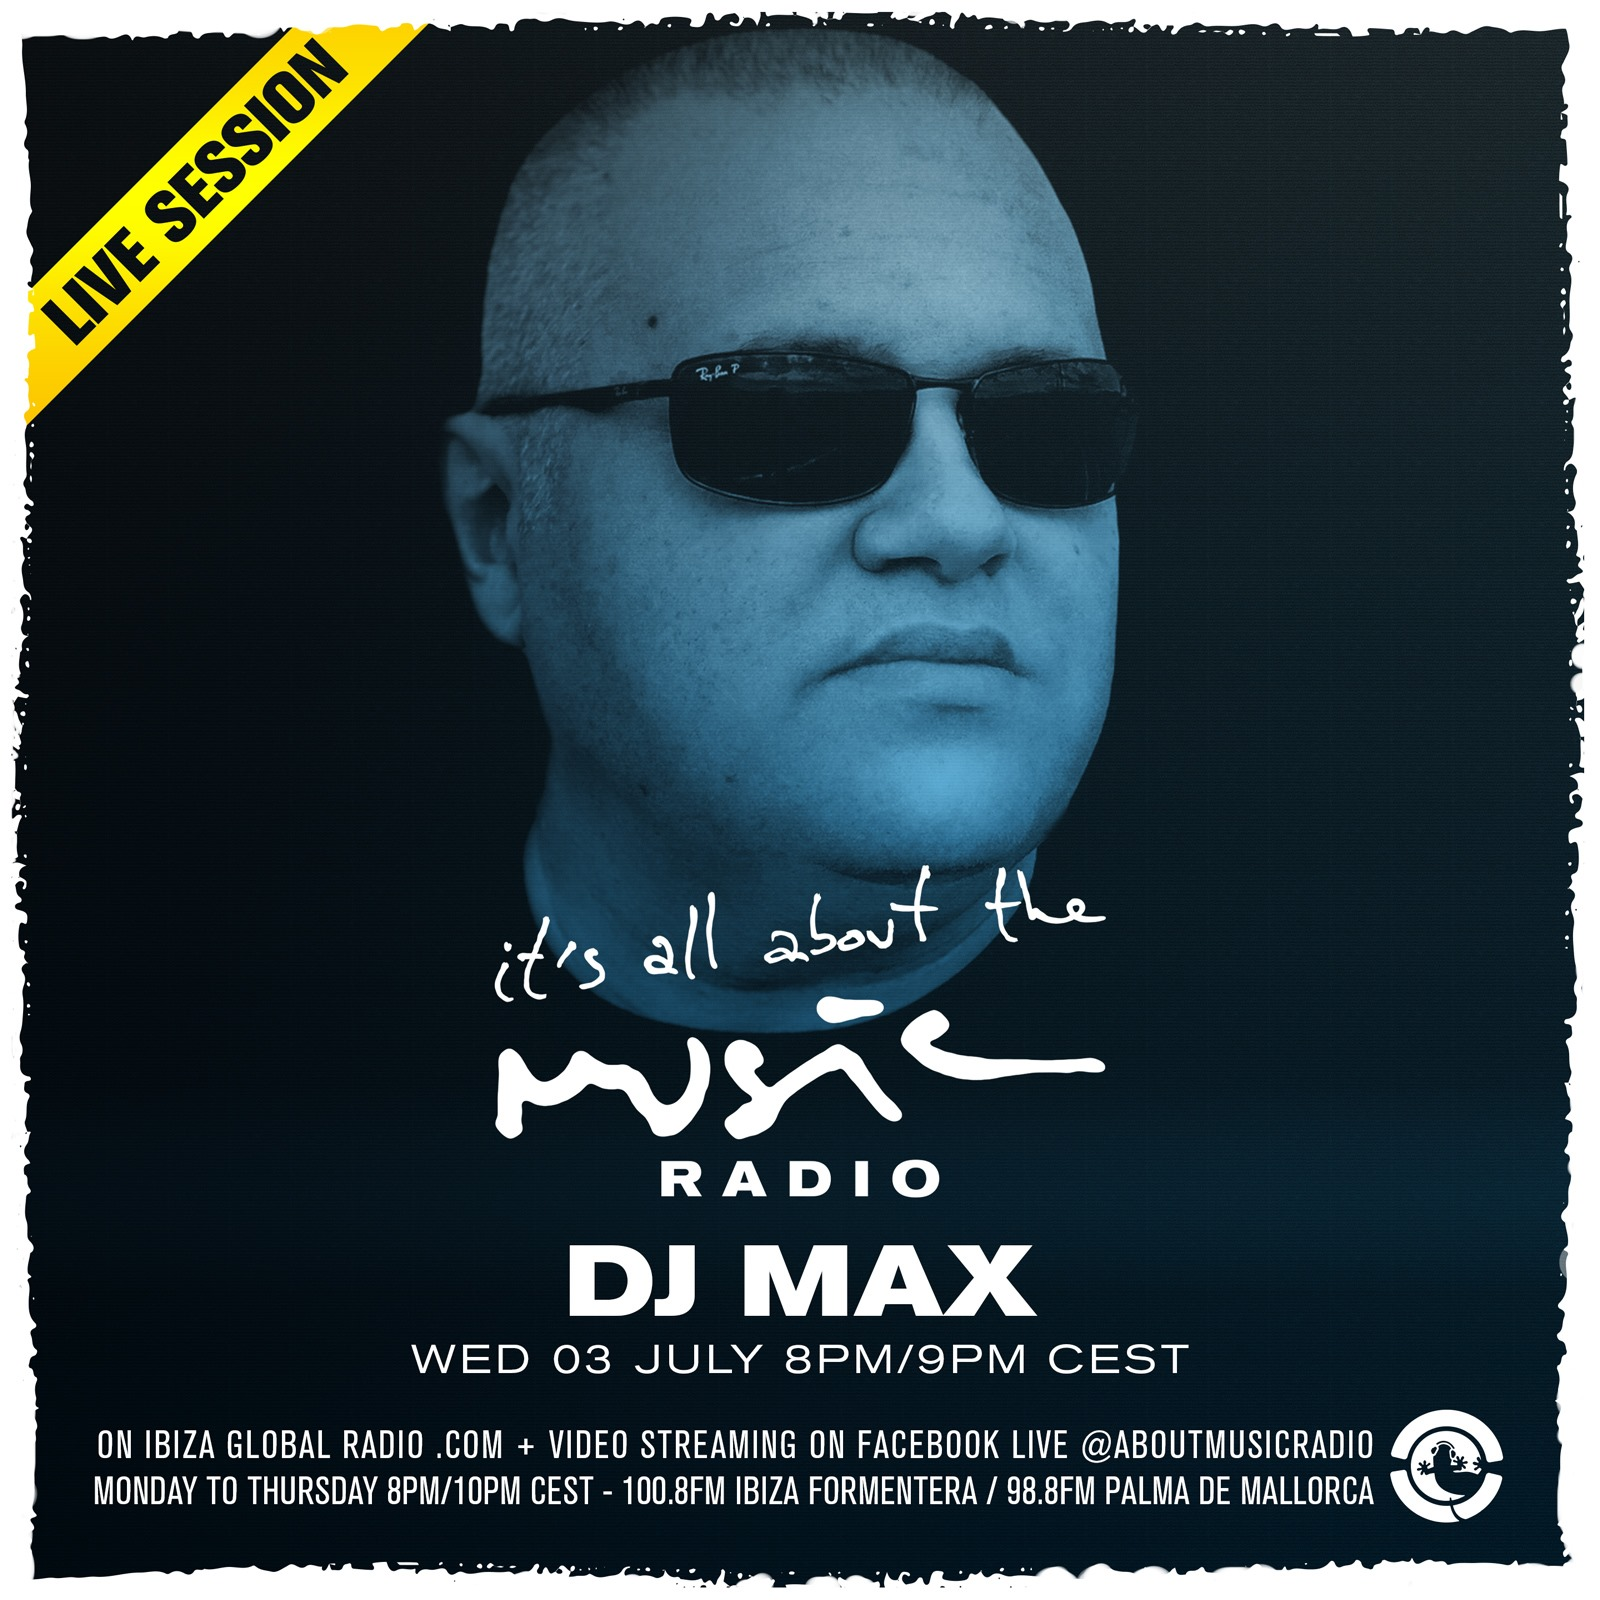 DJ MAX — An award-winning international DJ / Producer